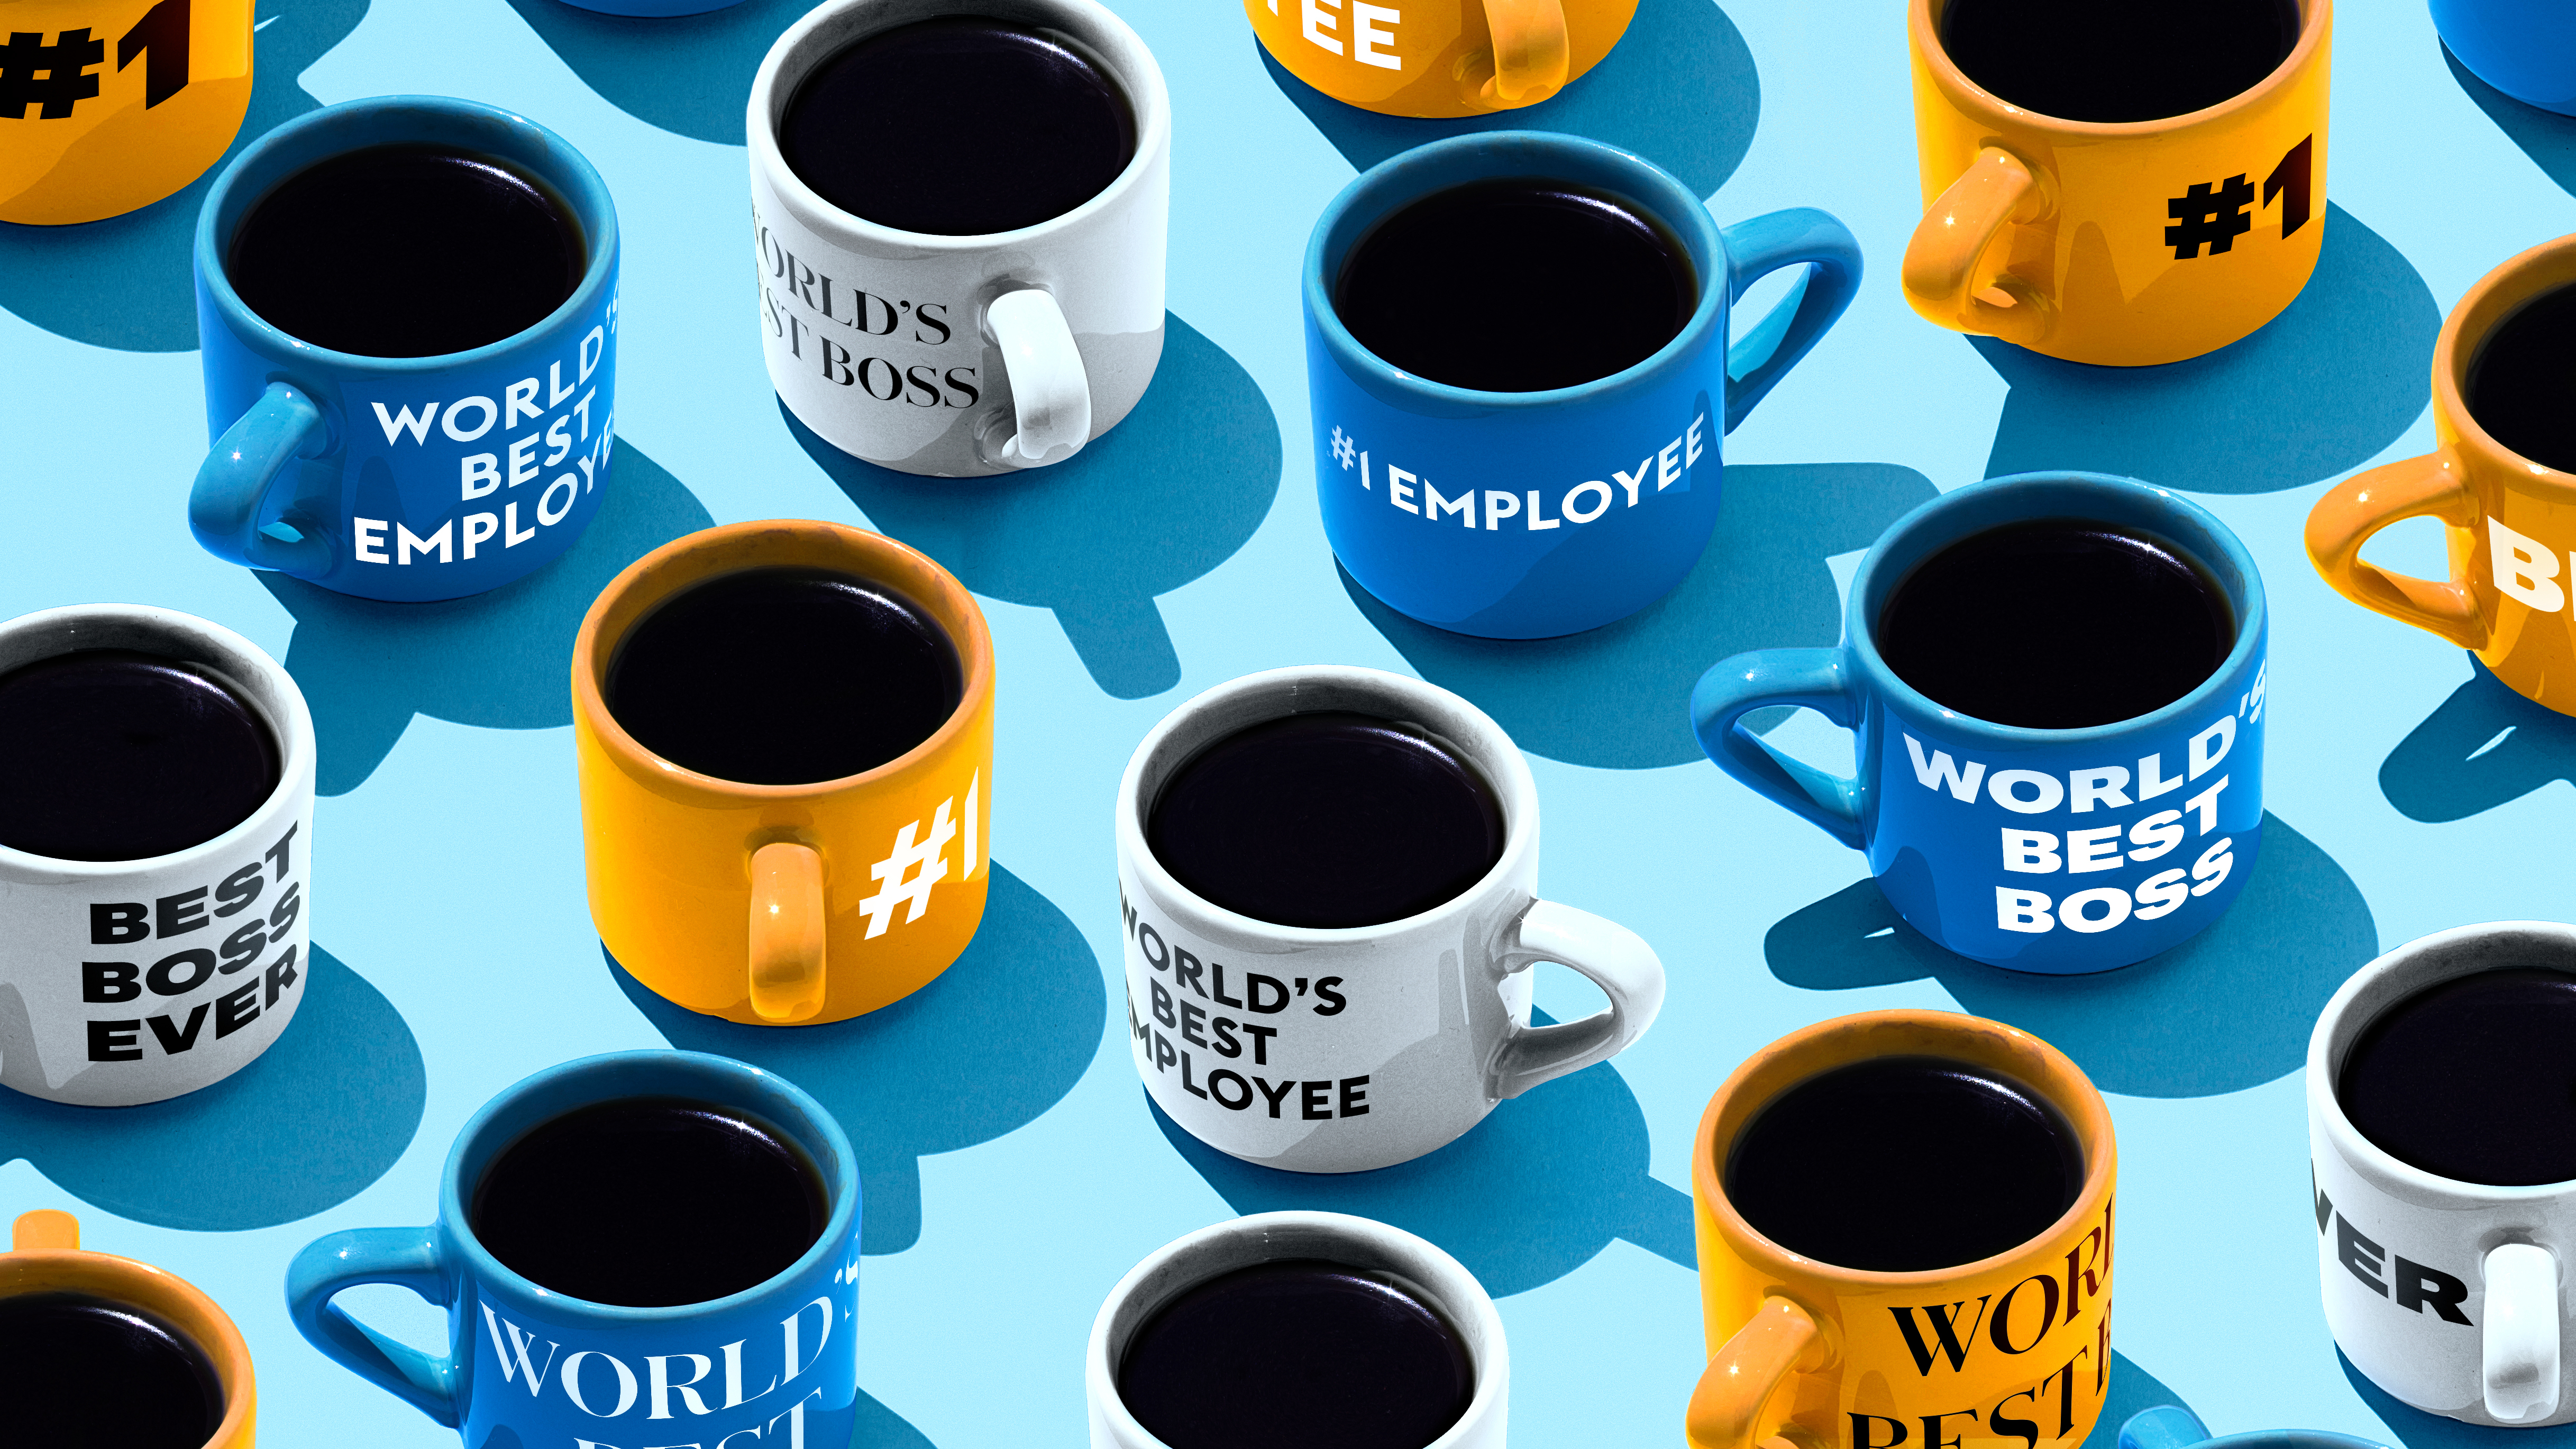 The World S Best Employers 2020 The guardian's picture editors select photo highlights from around the world, including a channel ferry and sunrise in japan. forbes